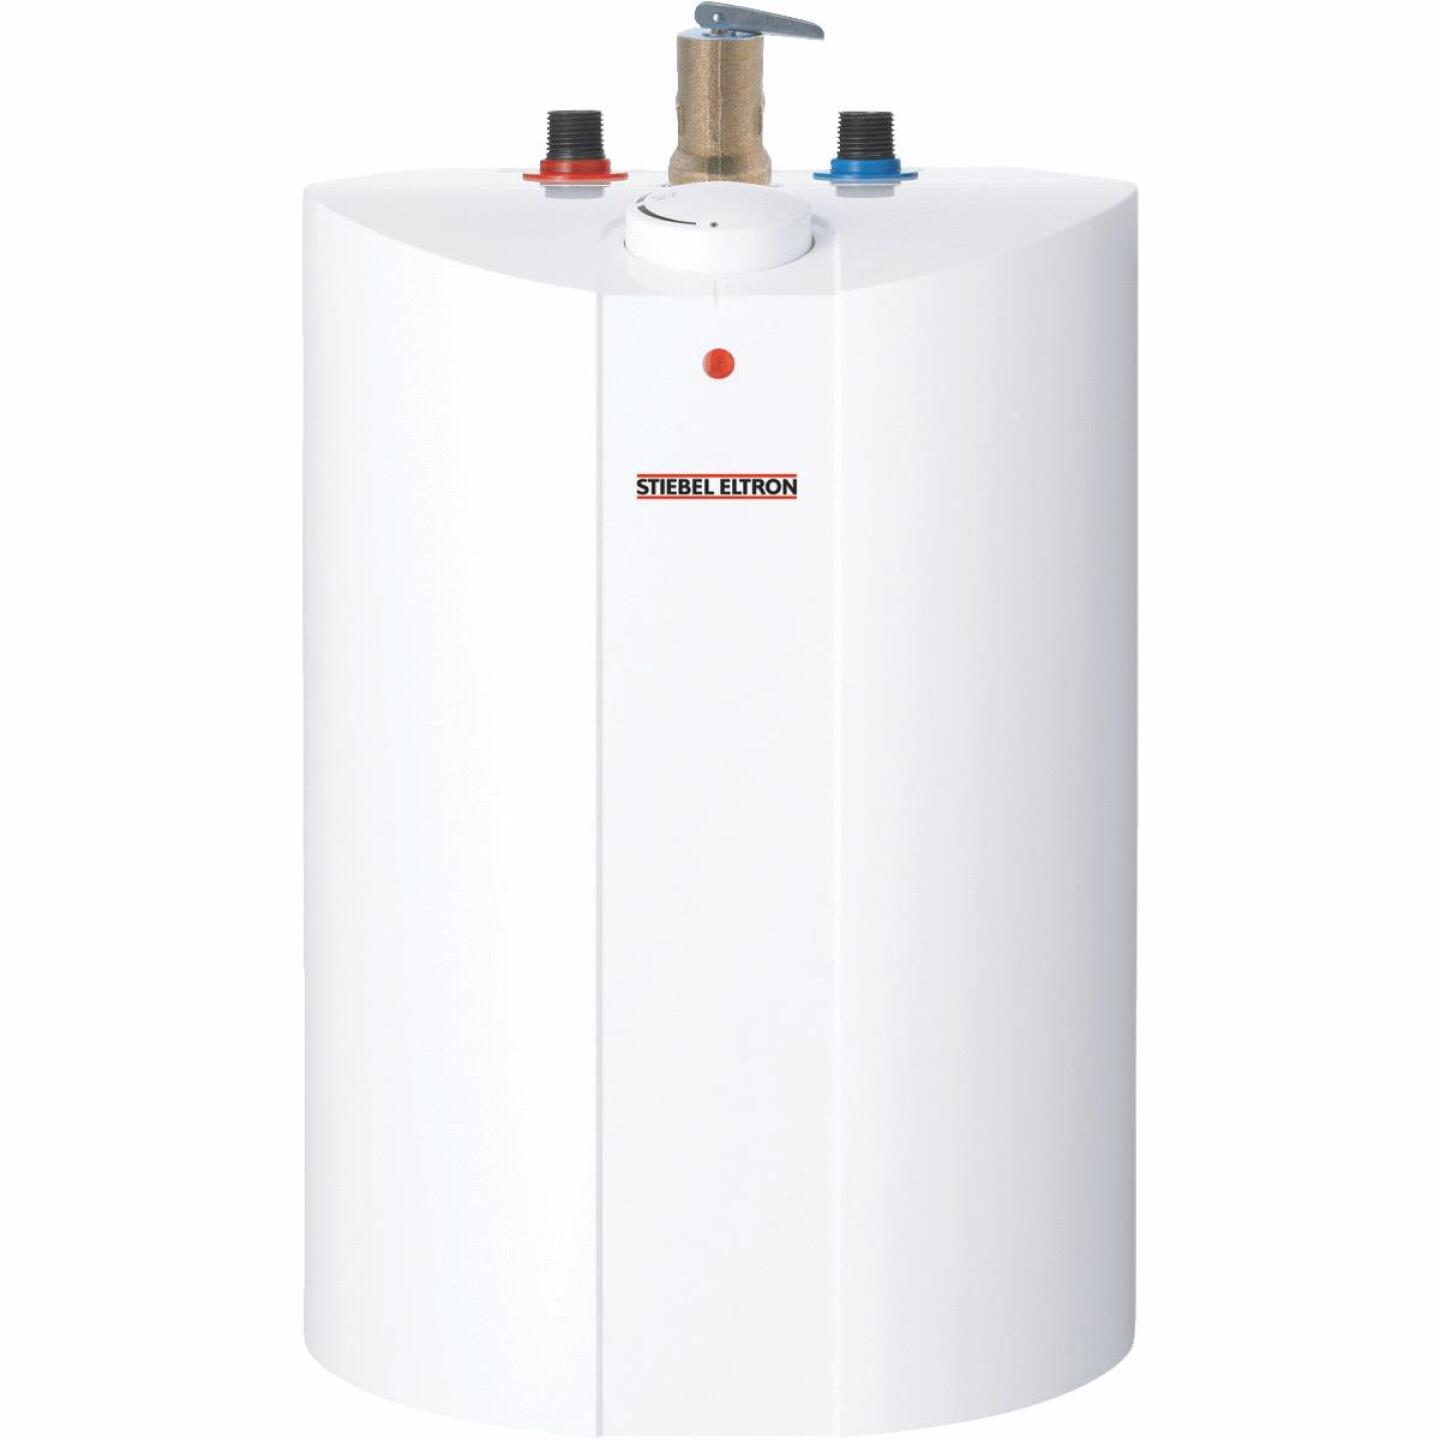 Stiebel Eltron 4 Gal. Point-of-Use Mini Tank Electric Water Heater Image 1